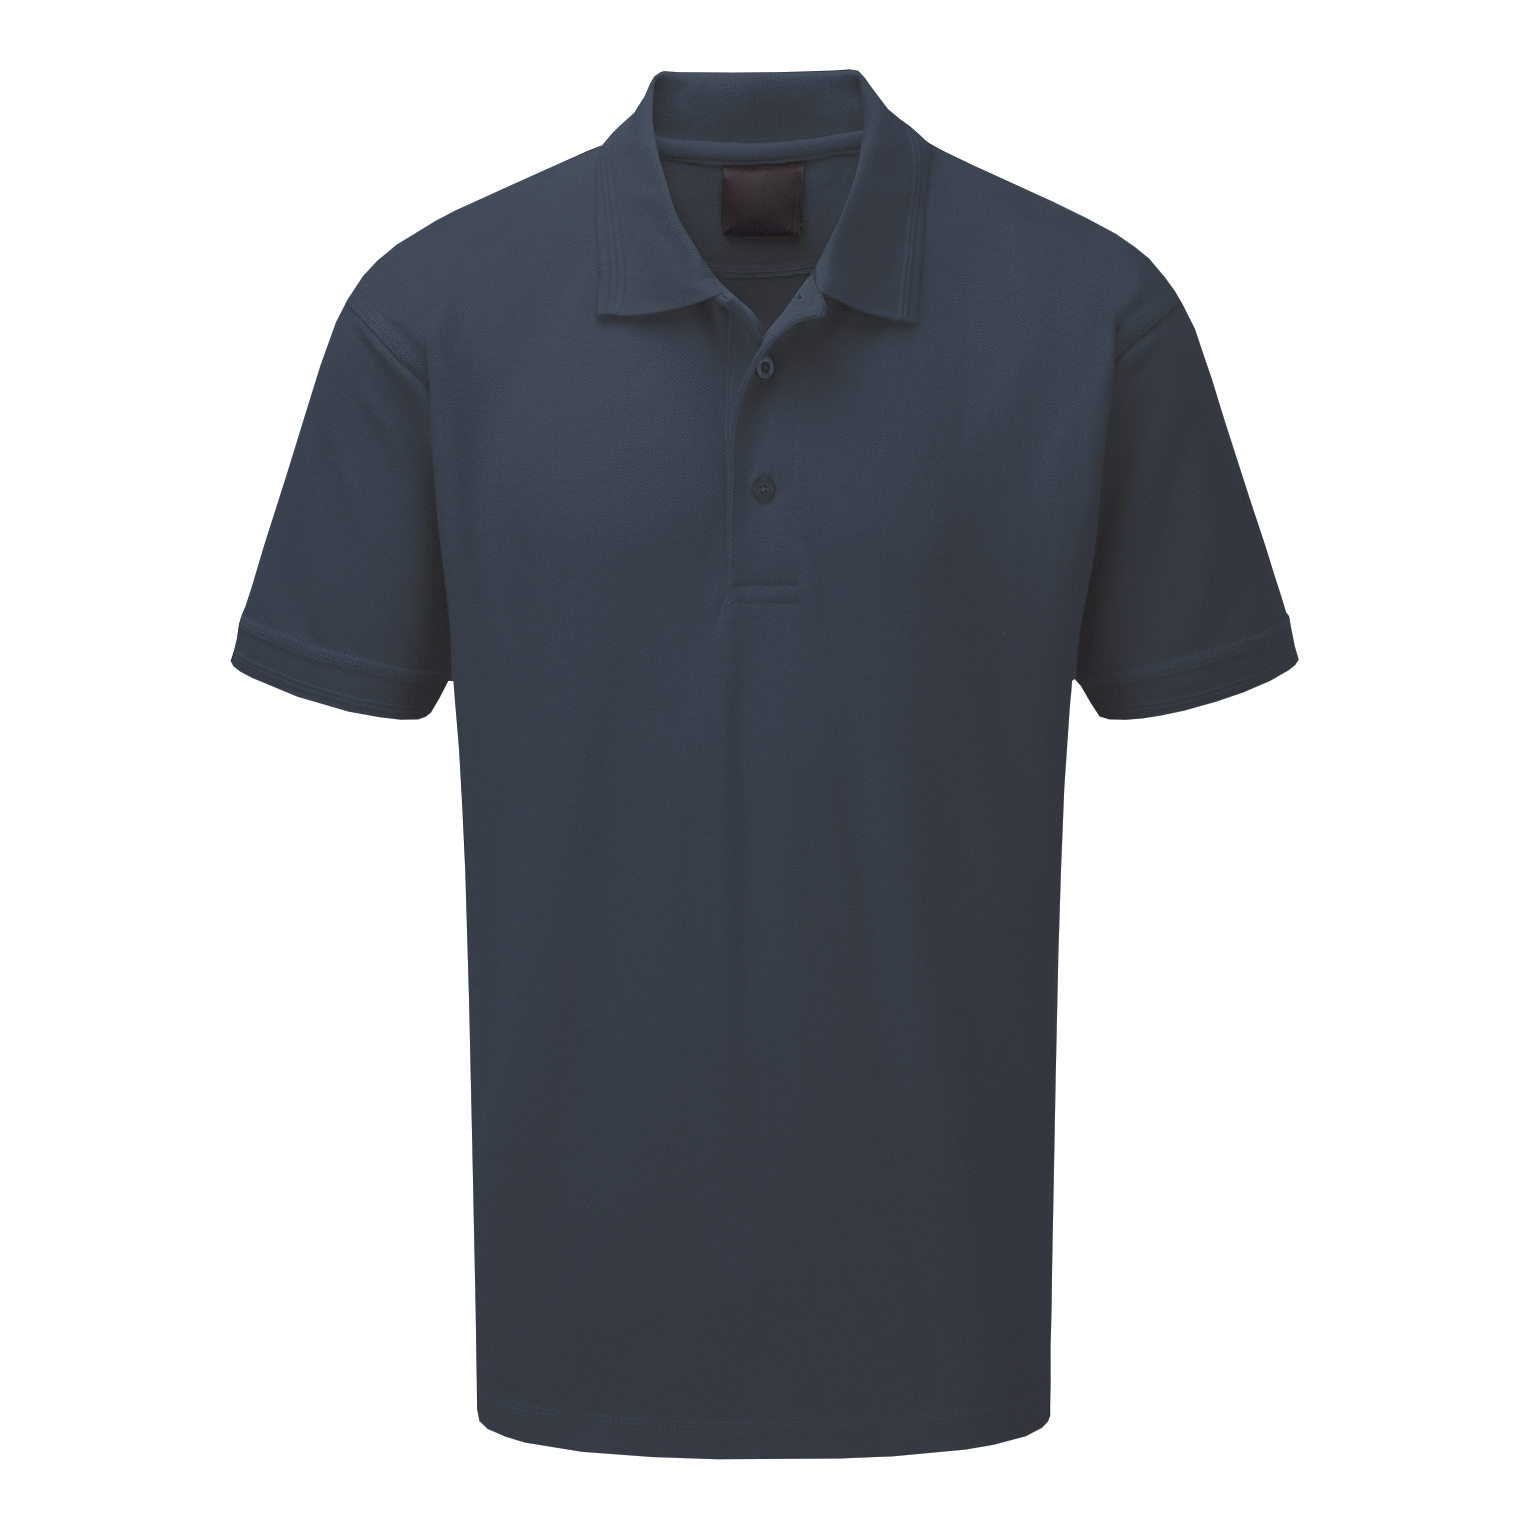 Click Workwear Polo Shirt Polycotton 200gsm Medium Graphite Ref CLPKSGYM *Approx 3 Day Leadtime*